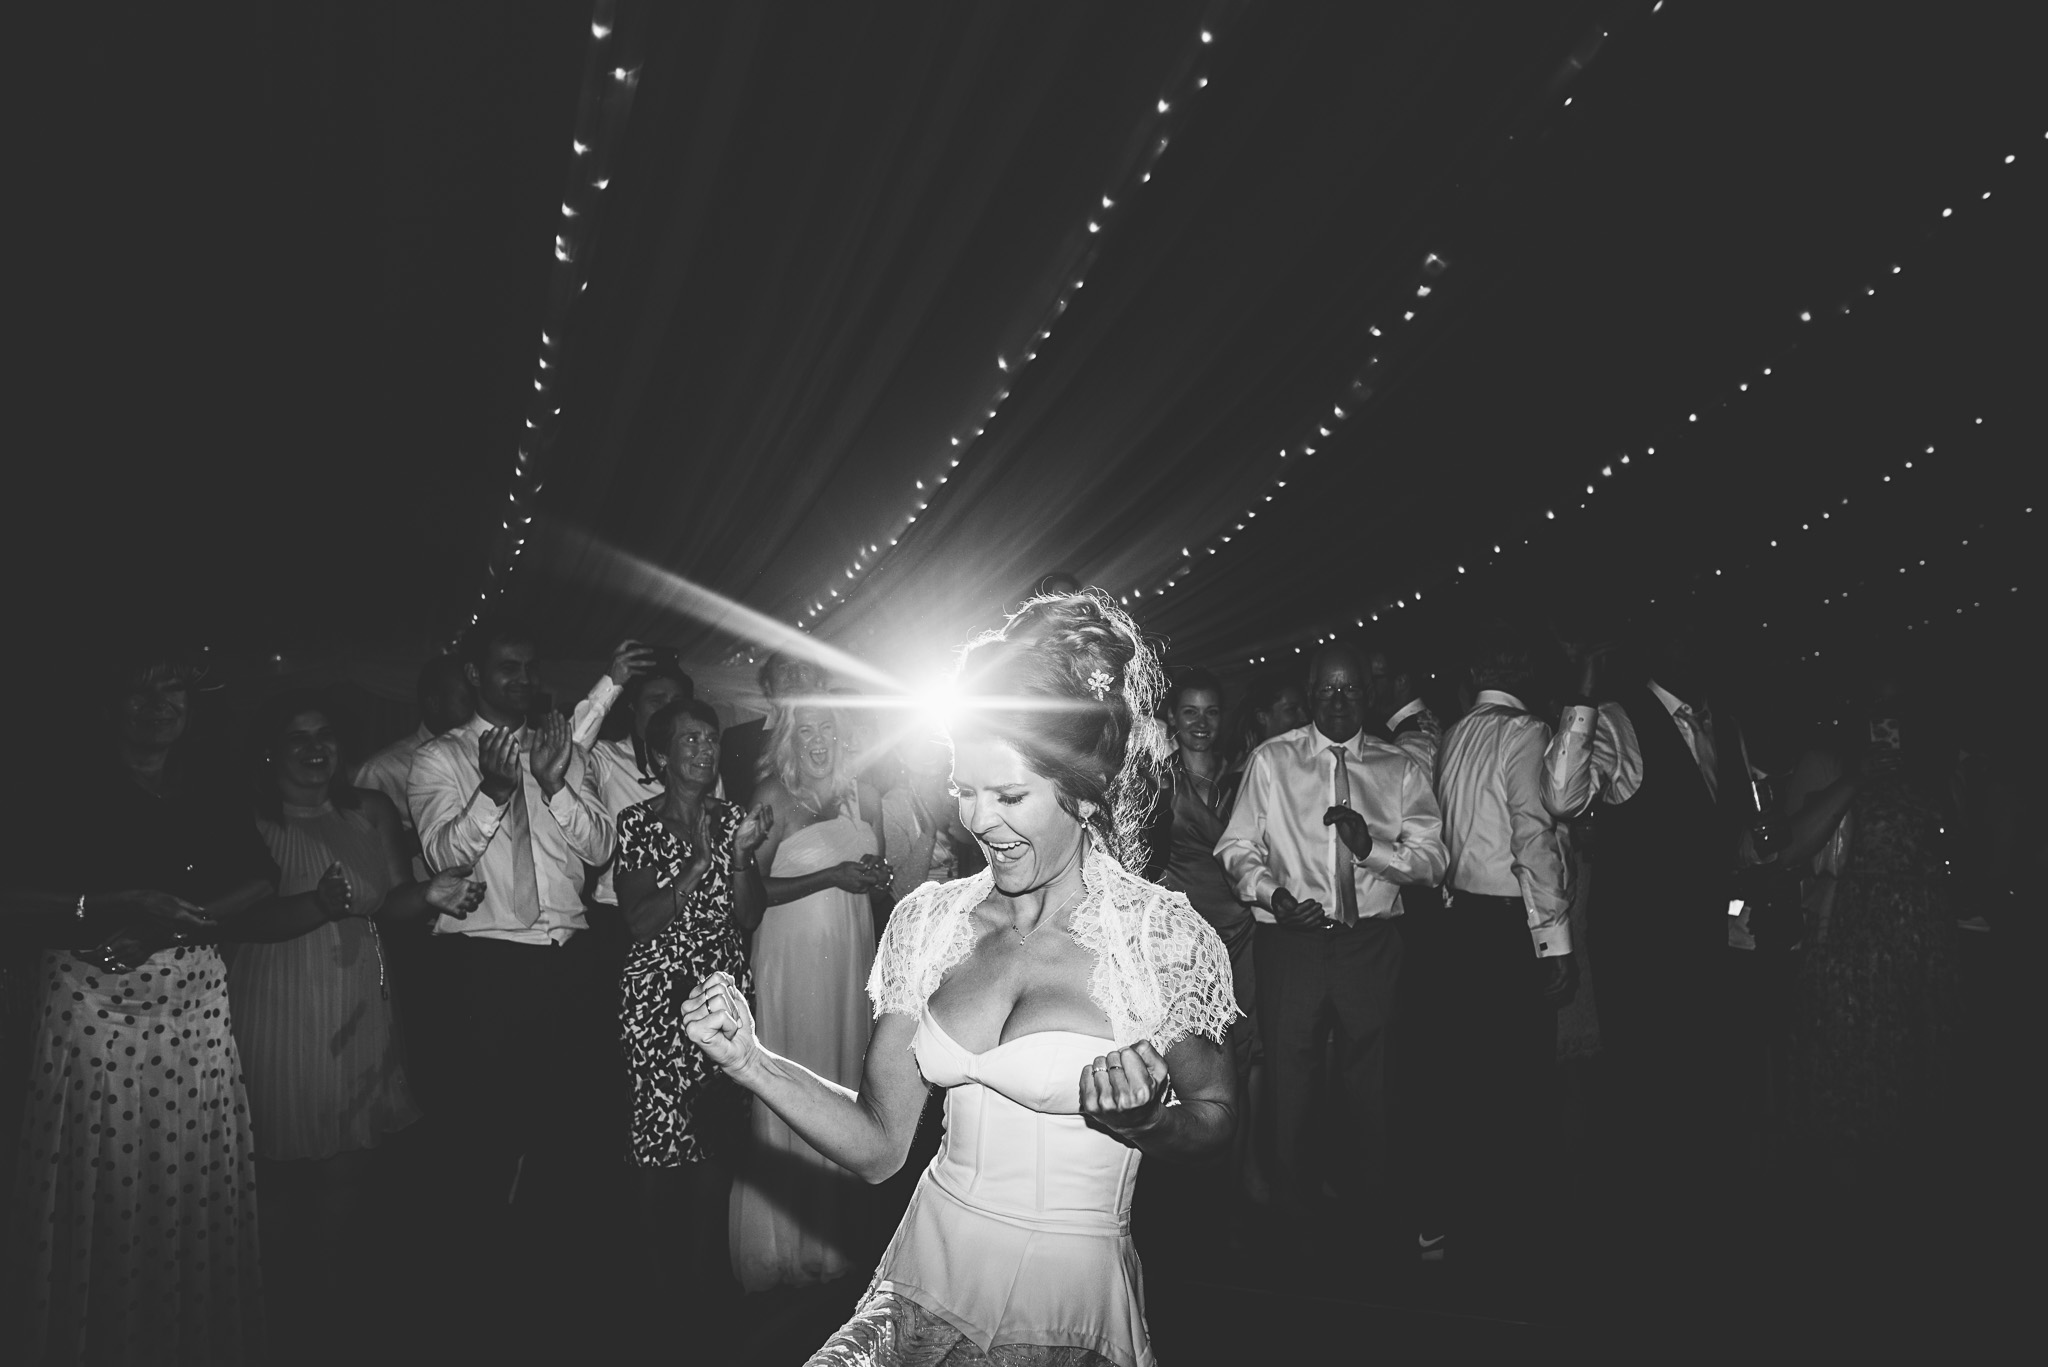 Lara & Jack Wedding 220815 by Barney Walters_1049_BW2_0985